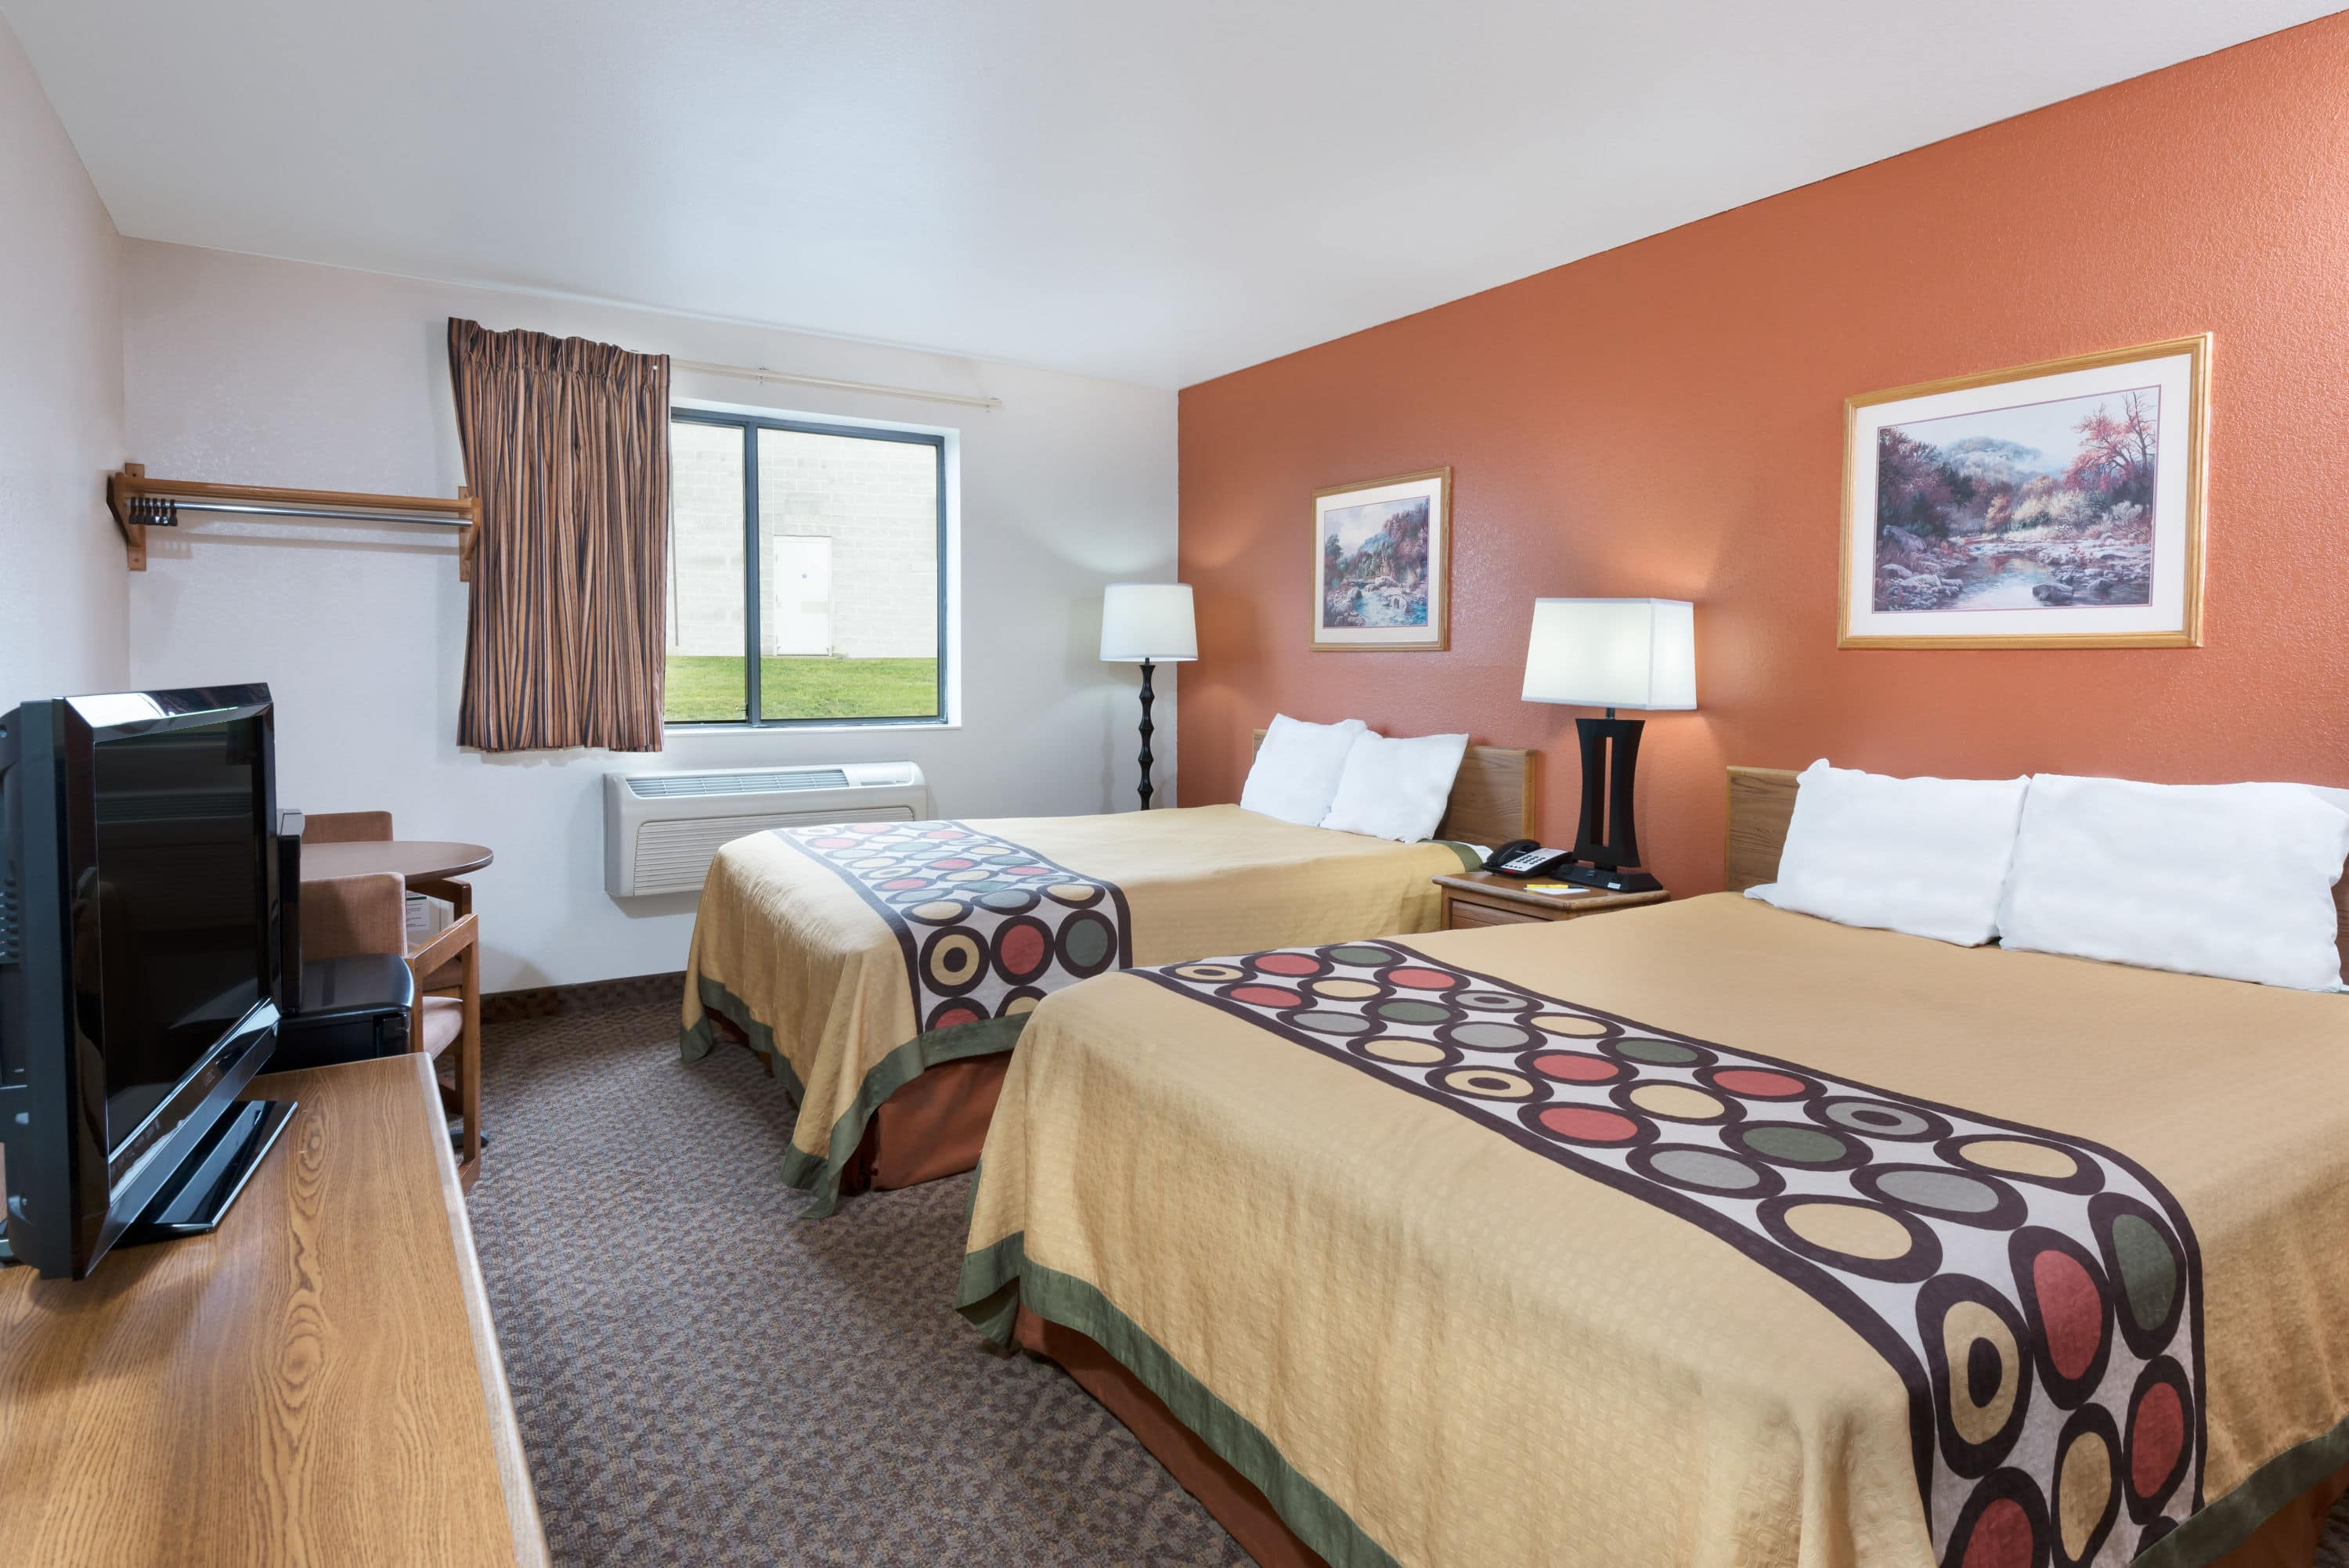 Top Guest Room At The Super Morgantown In West Virginia With Hotels Near Ruby Memorial Hospital Wv